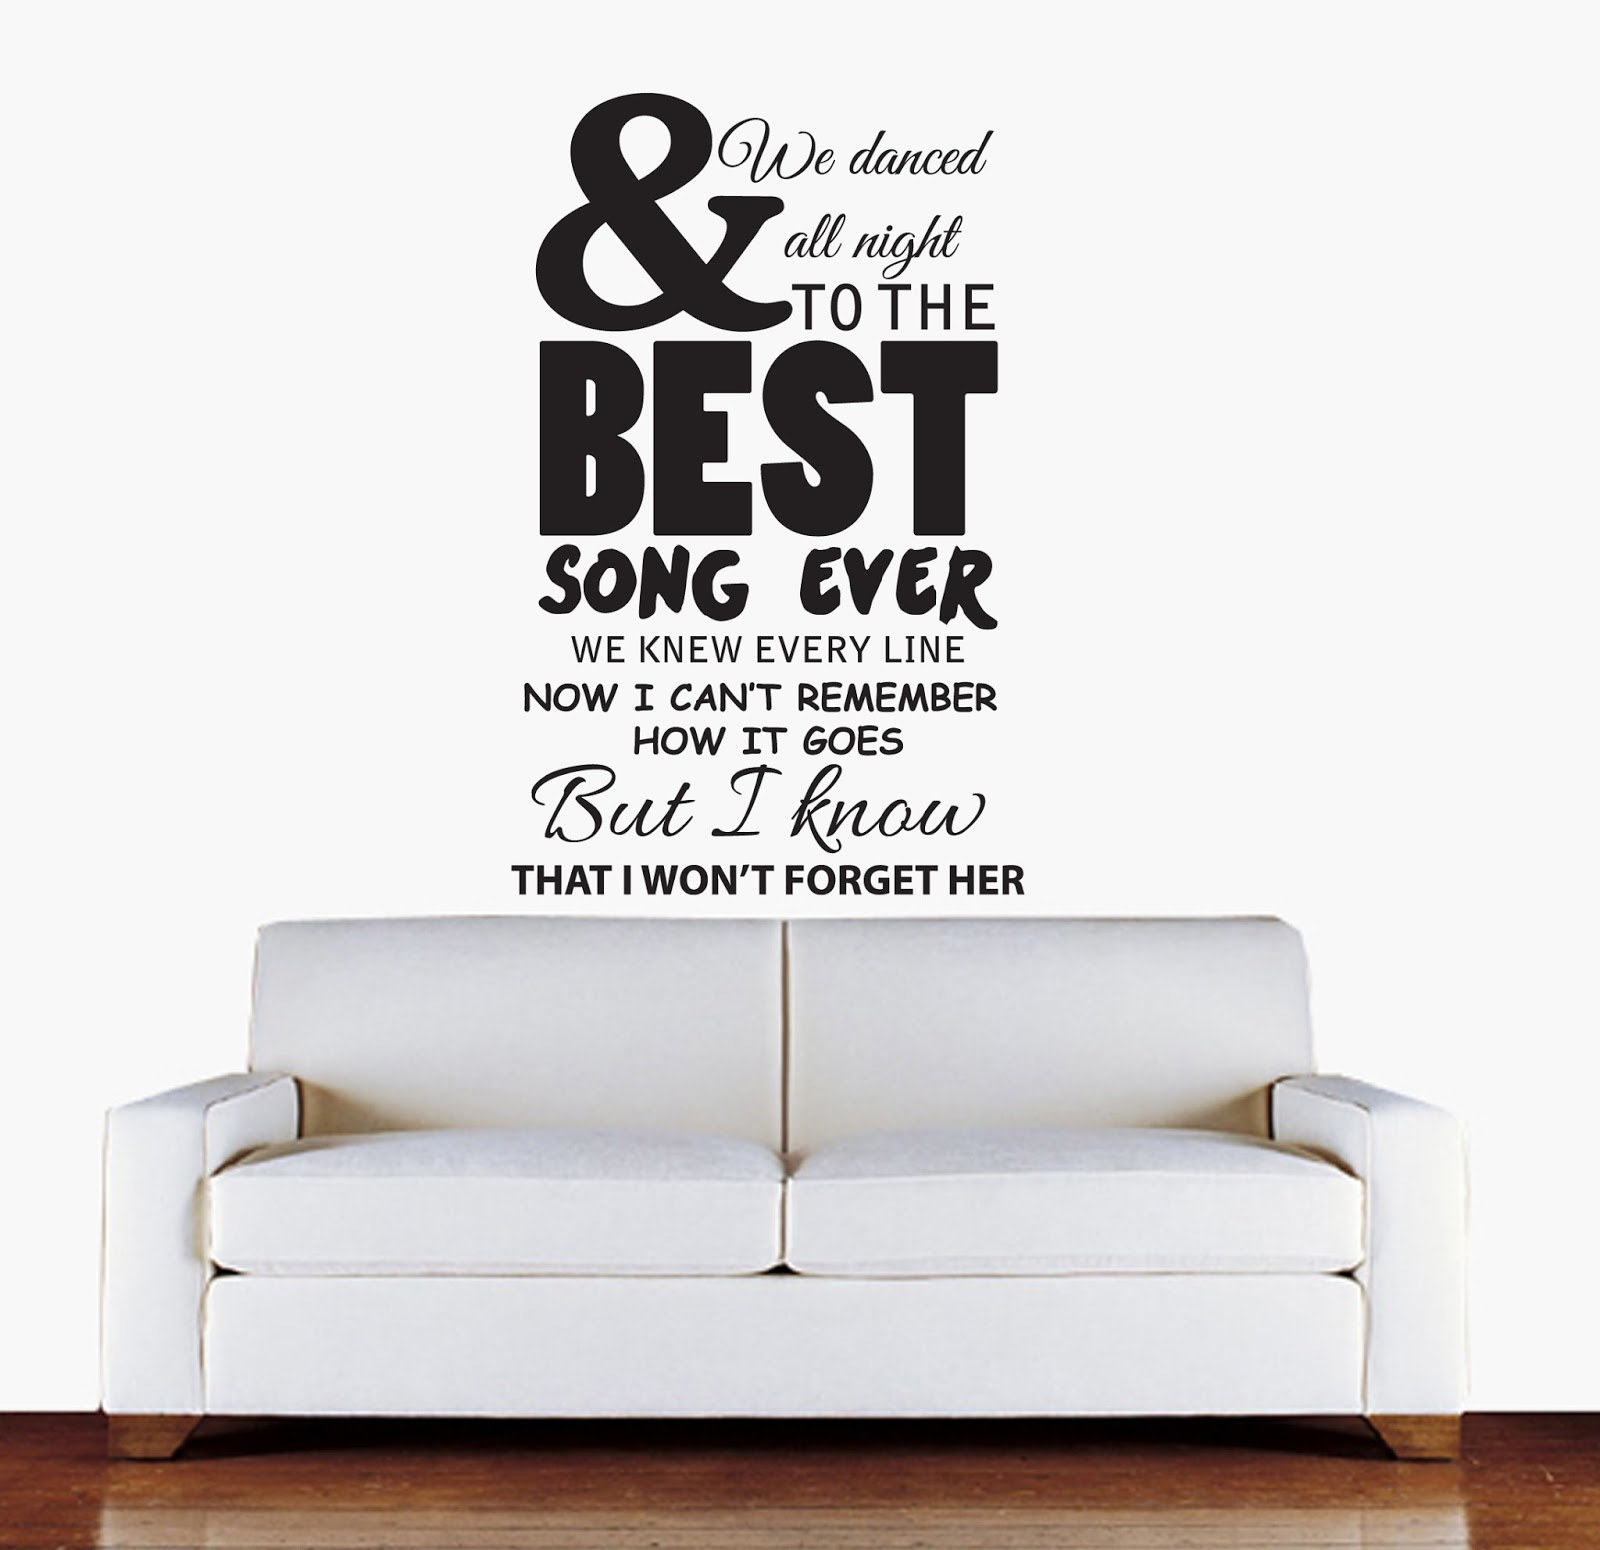 sophie jenner wall stickers 1d one direction lyrics wall stickers. Black Bedroom Furniture Sets. Home Design Ideas